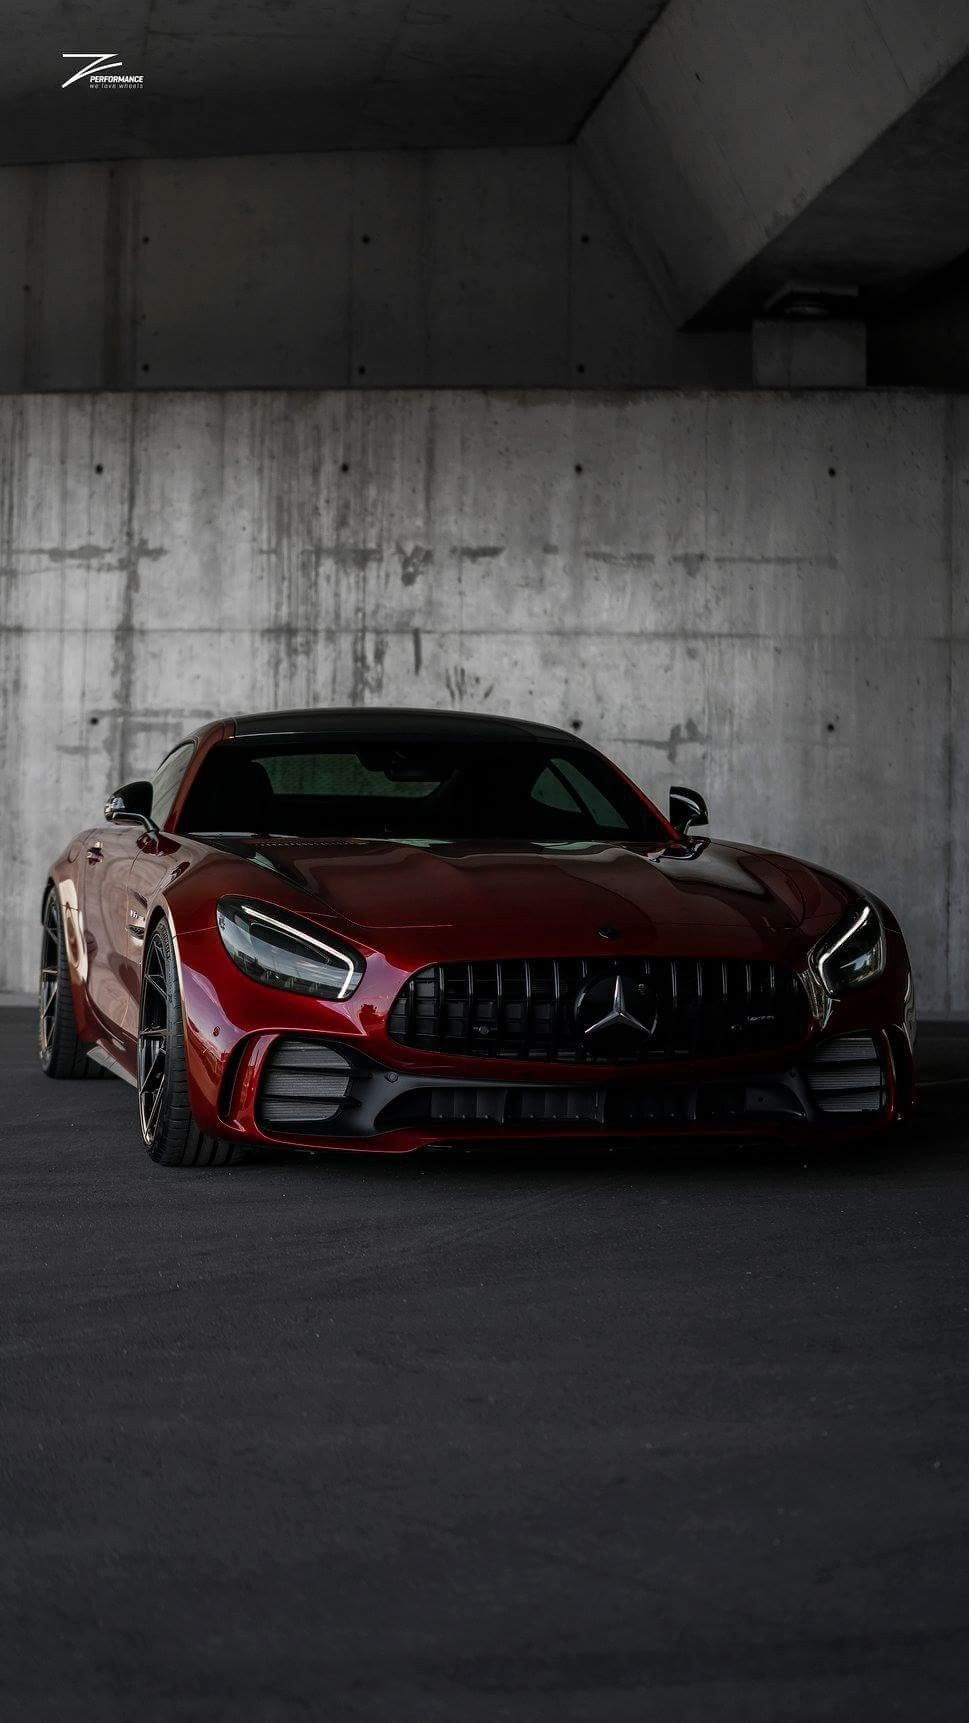 Expensive Cars Above Are Deluxe Autos That Are Pricey High End Automobiles Remain In Limited Production So Super Cars Expensive Sports Cars Mercedes Amg Gt R